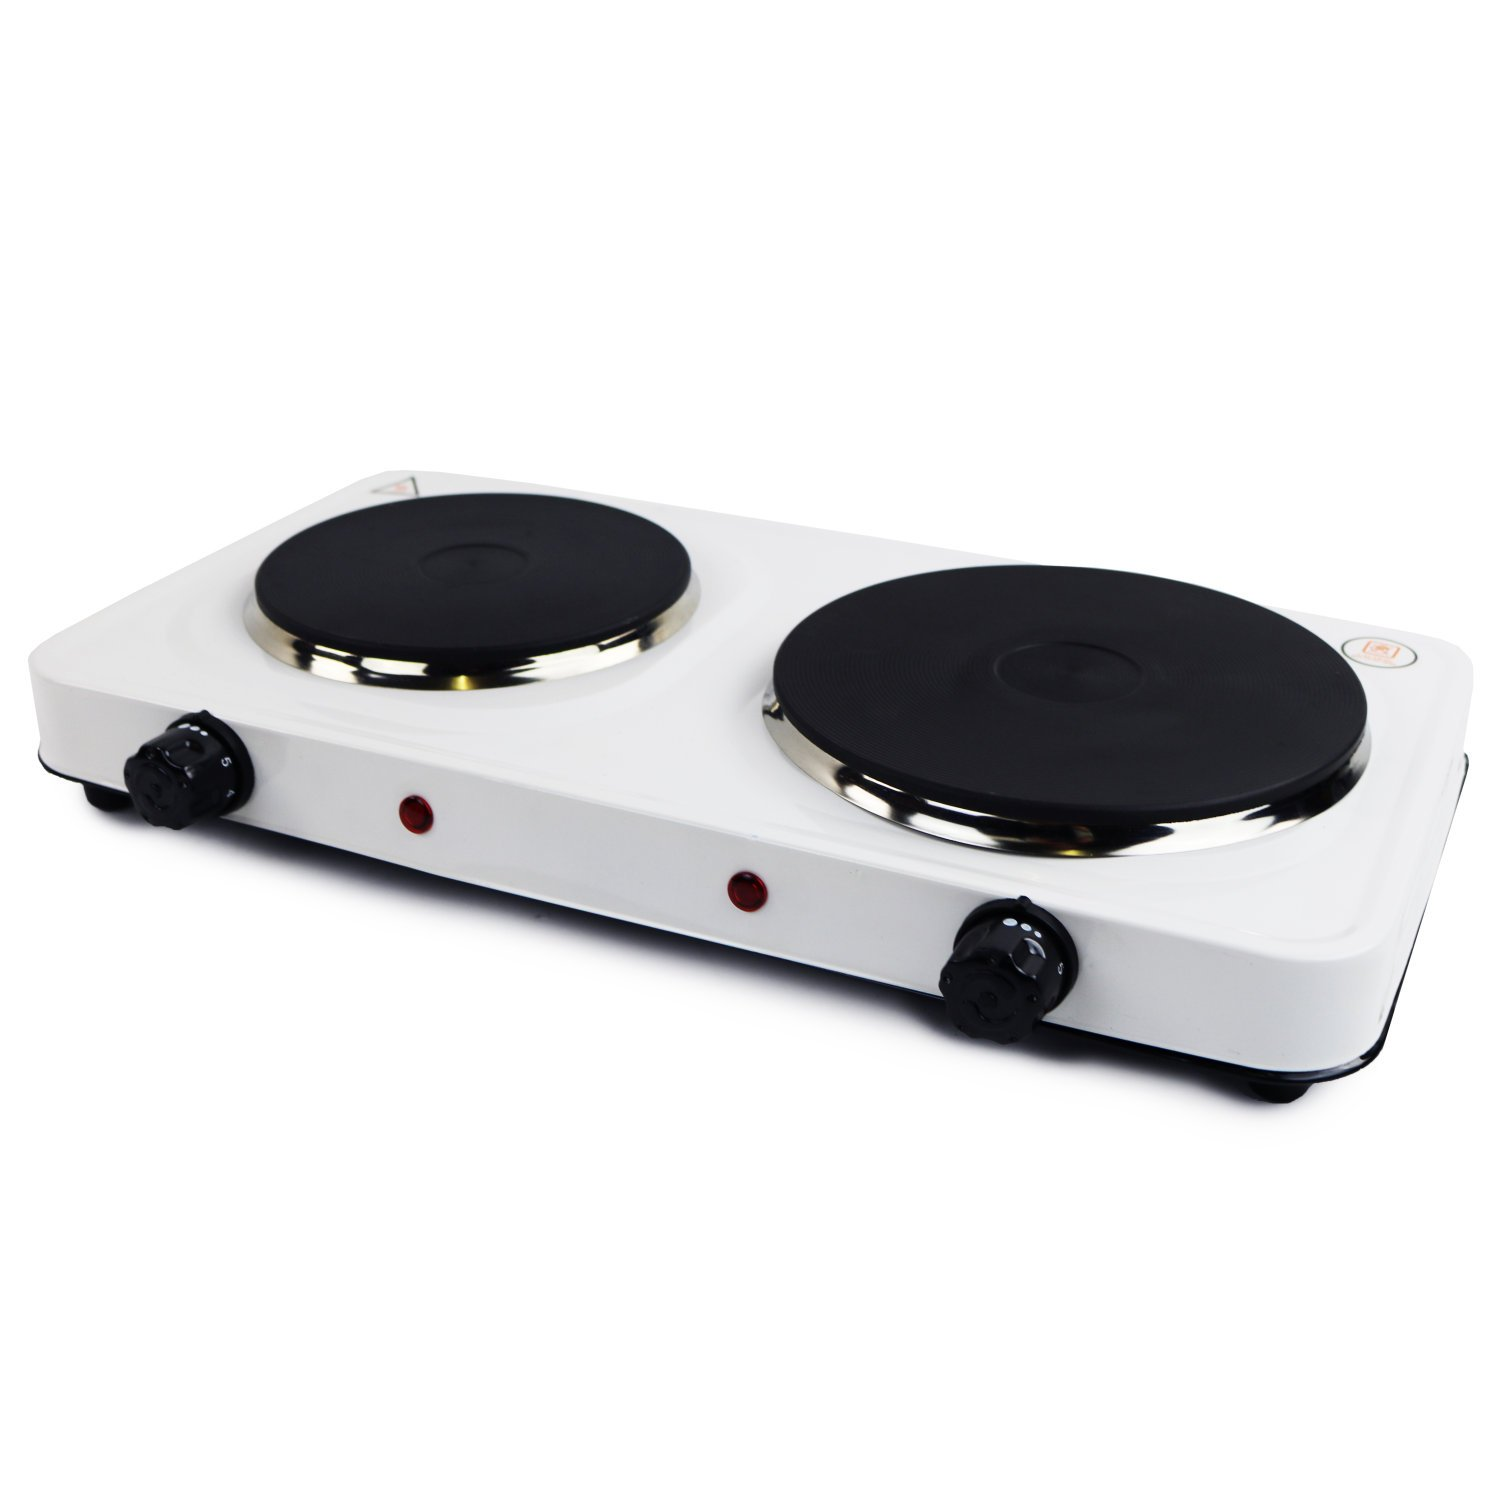 2.5Kw Electric Portable Kitchen Hot Plate - £19.99 : Oypla ...